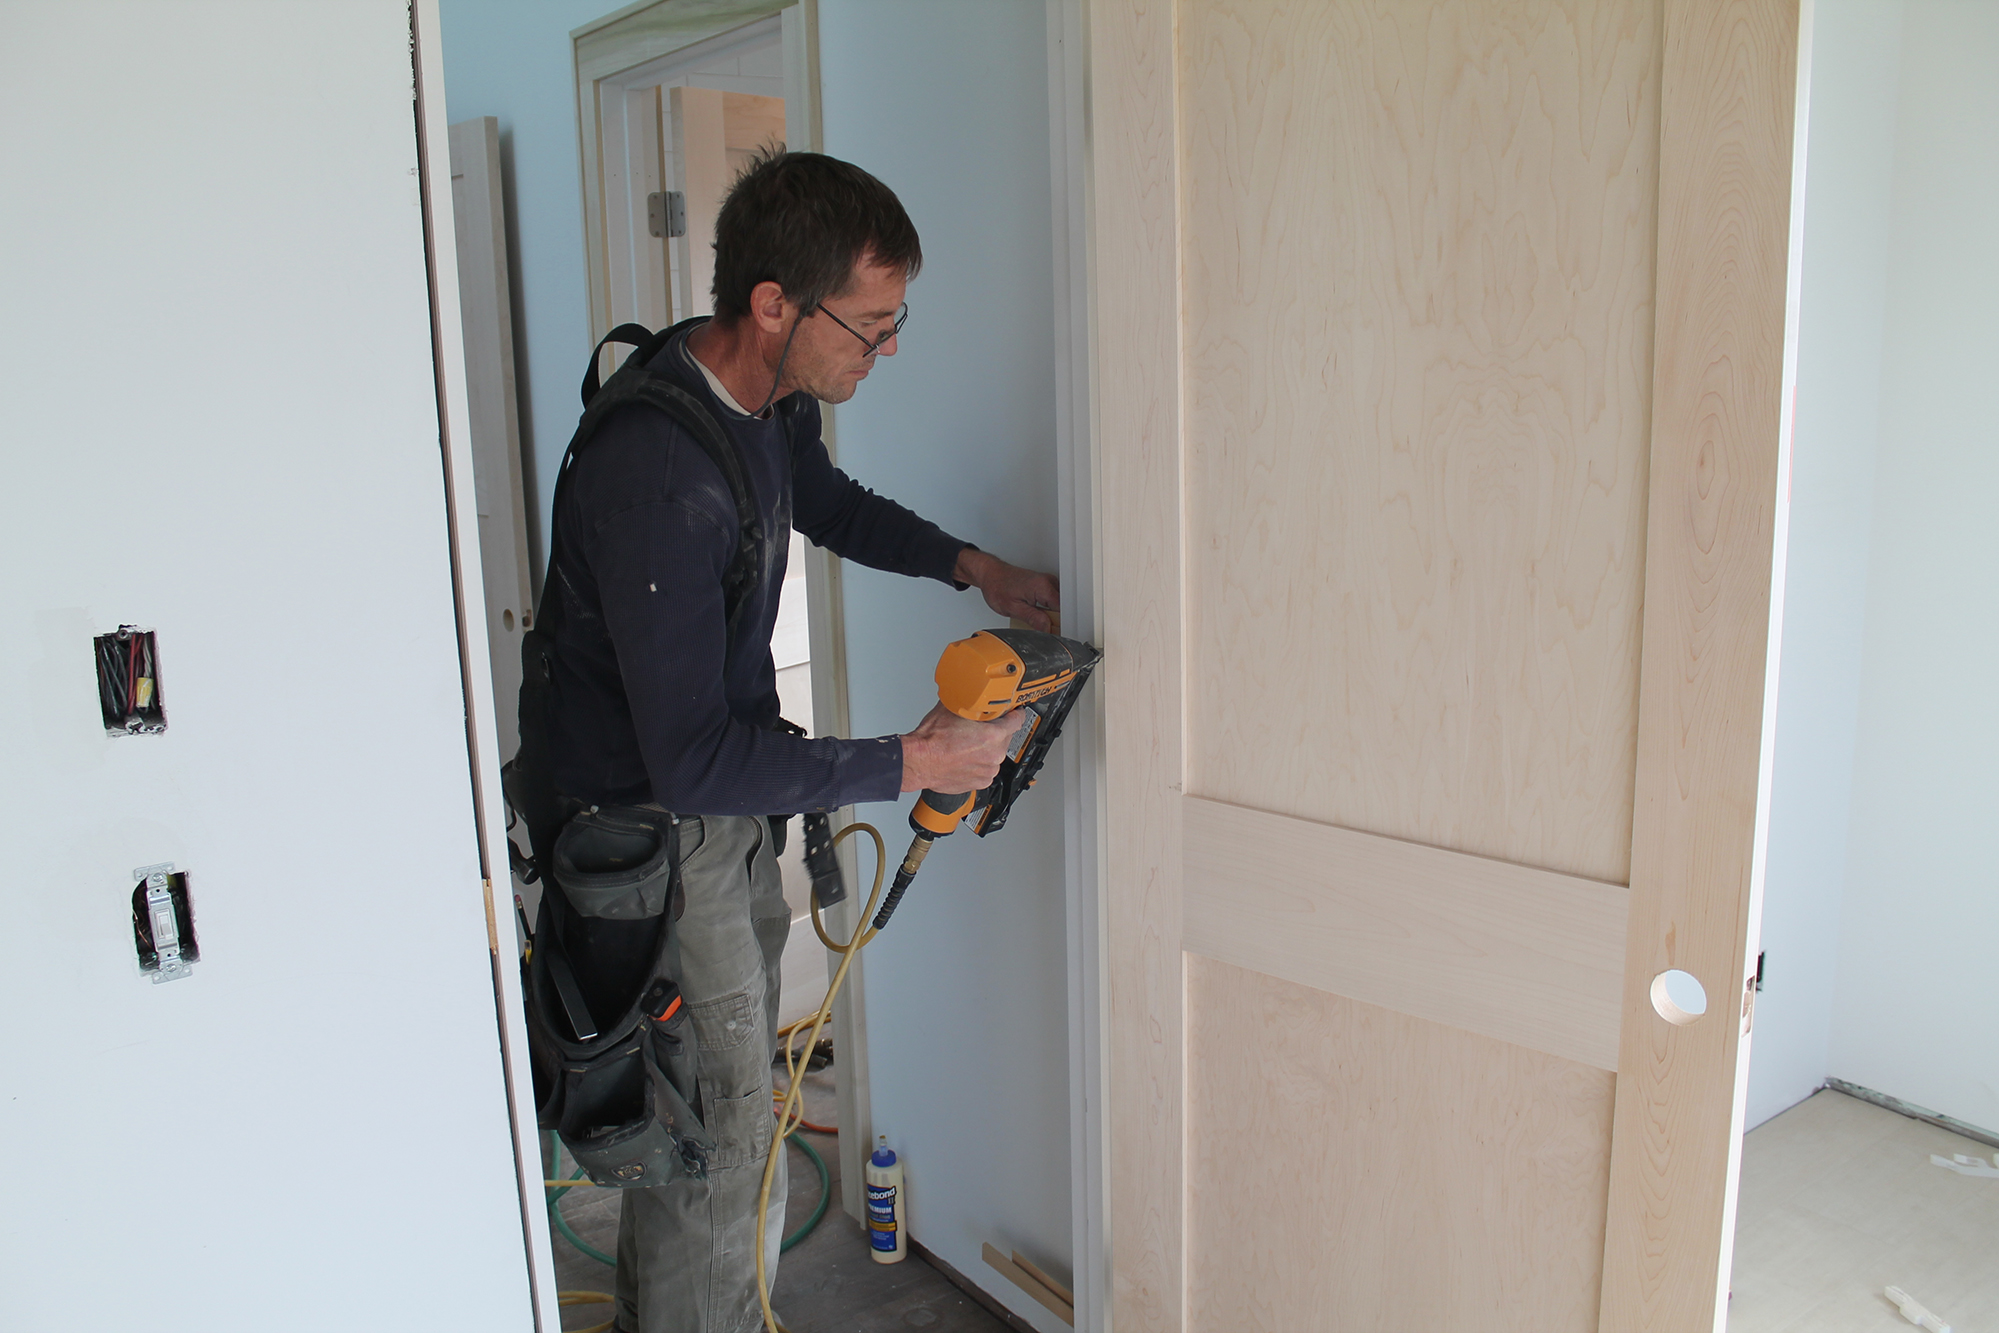 Hanging pre hung interior doors jlc online interiors doors carpentry finish carpentry for Hanging interior prehung doors